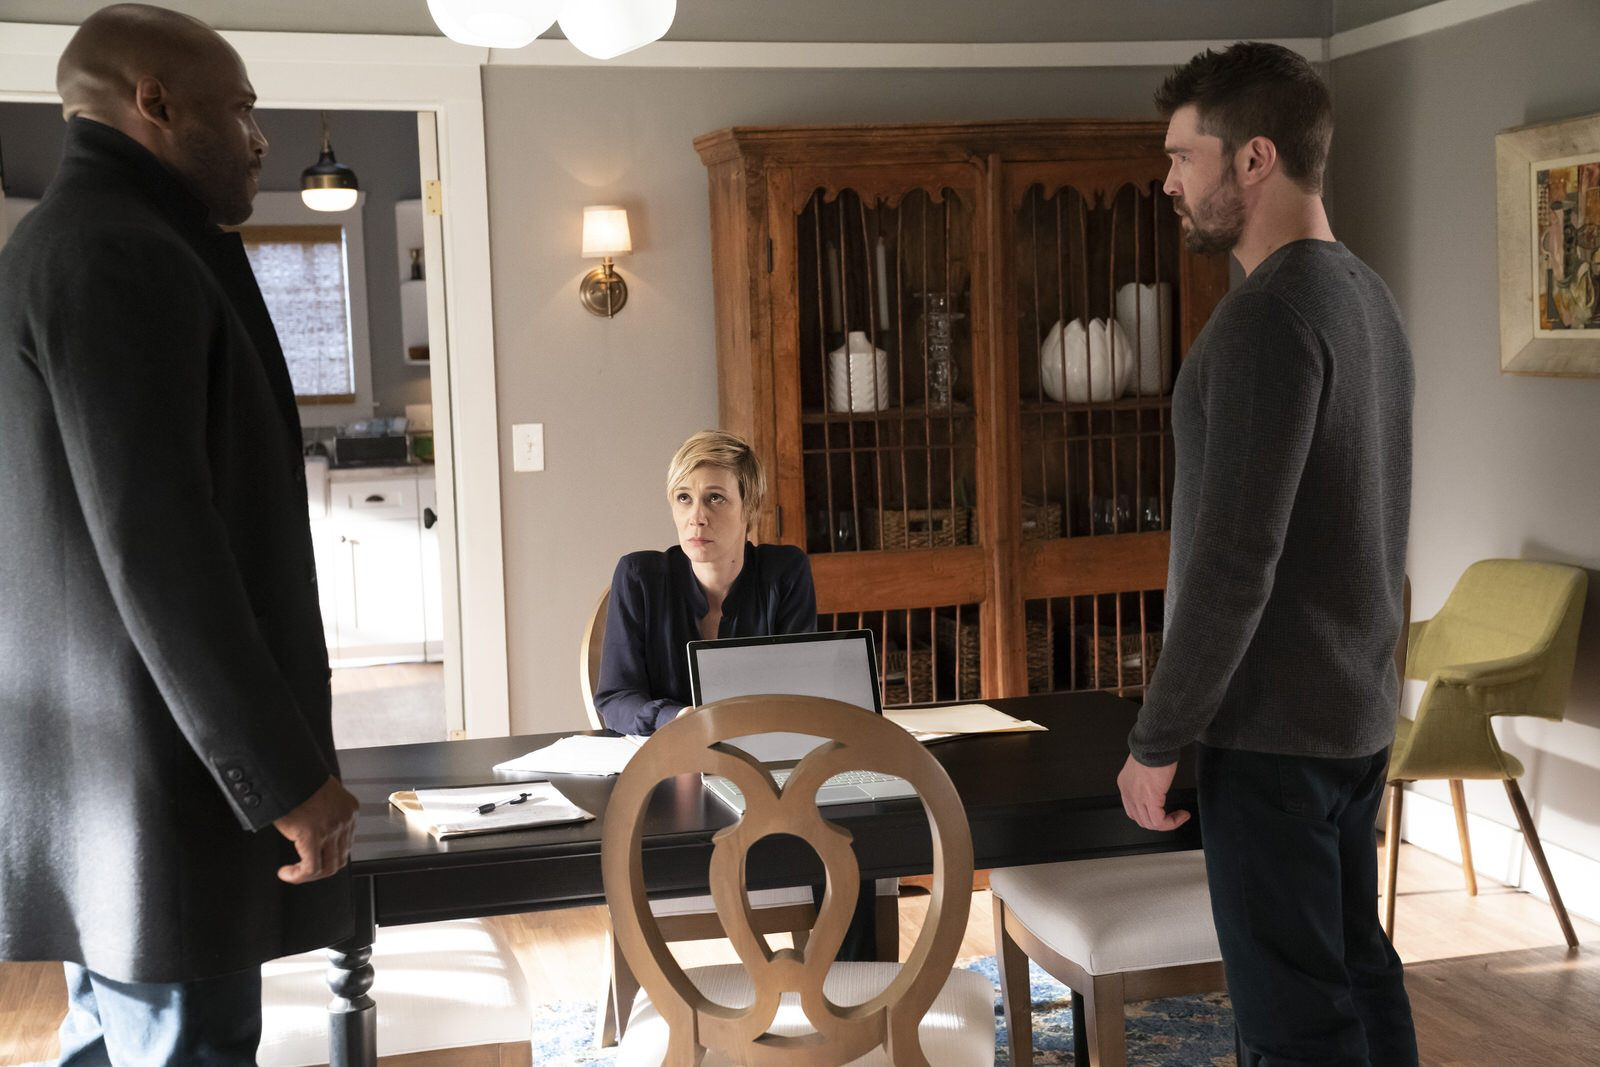 How To Get Away With Murder 5x15 (Season Finale) - Nate (Billy Brown), Bonnie (Liza Weil) y Frank (Charlie Weber)